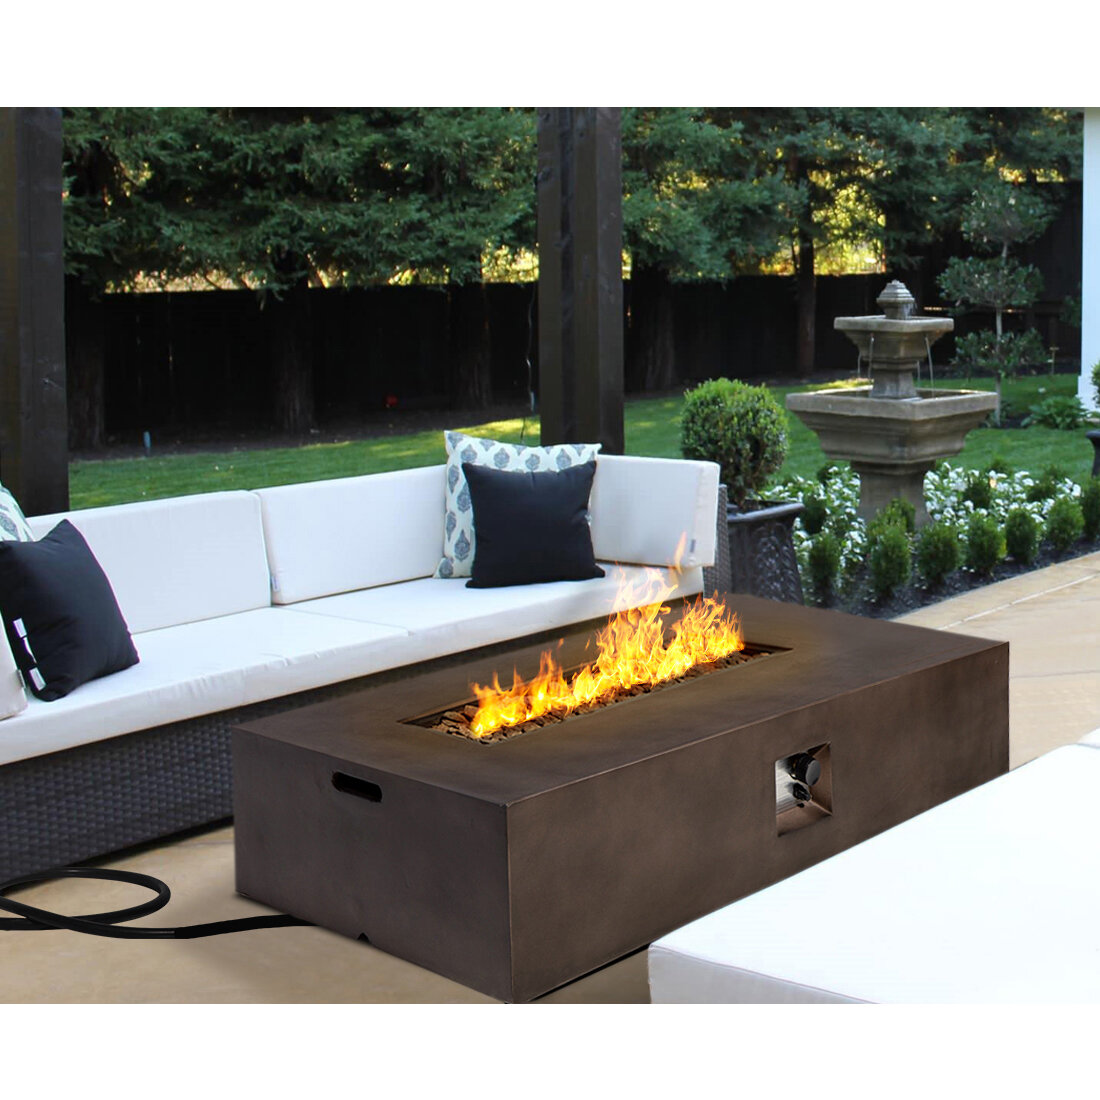 Propane Rectangular Fire Pits You Ll Love In 2021 Wayfair